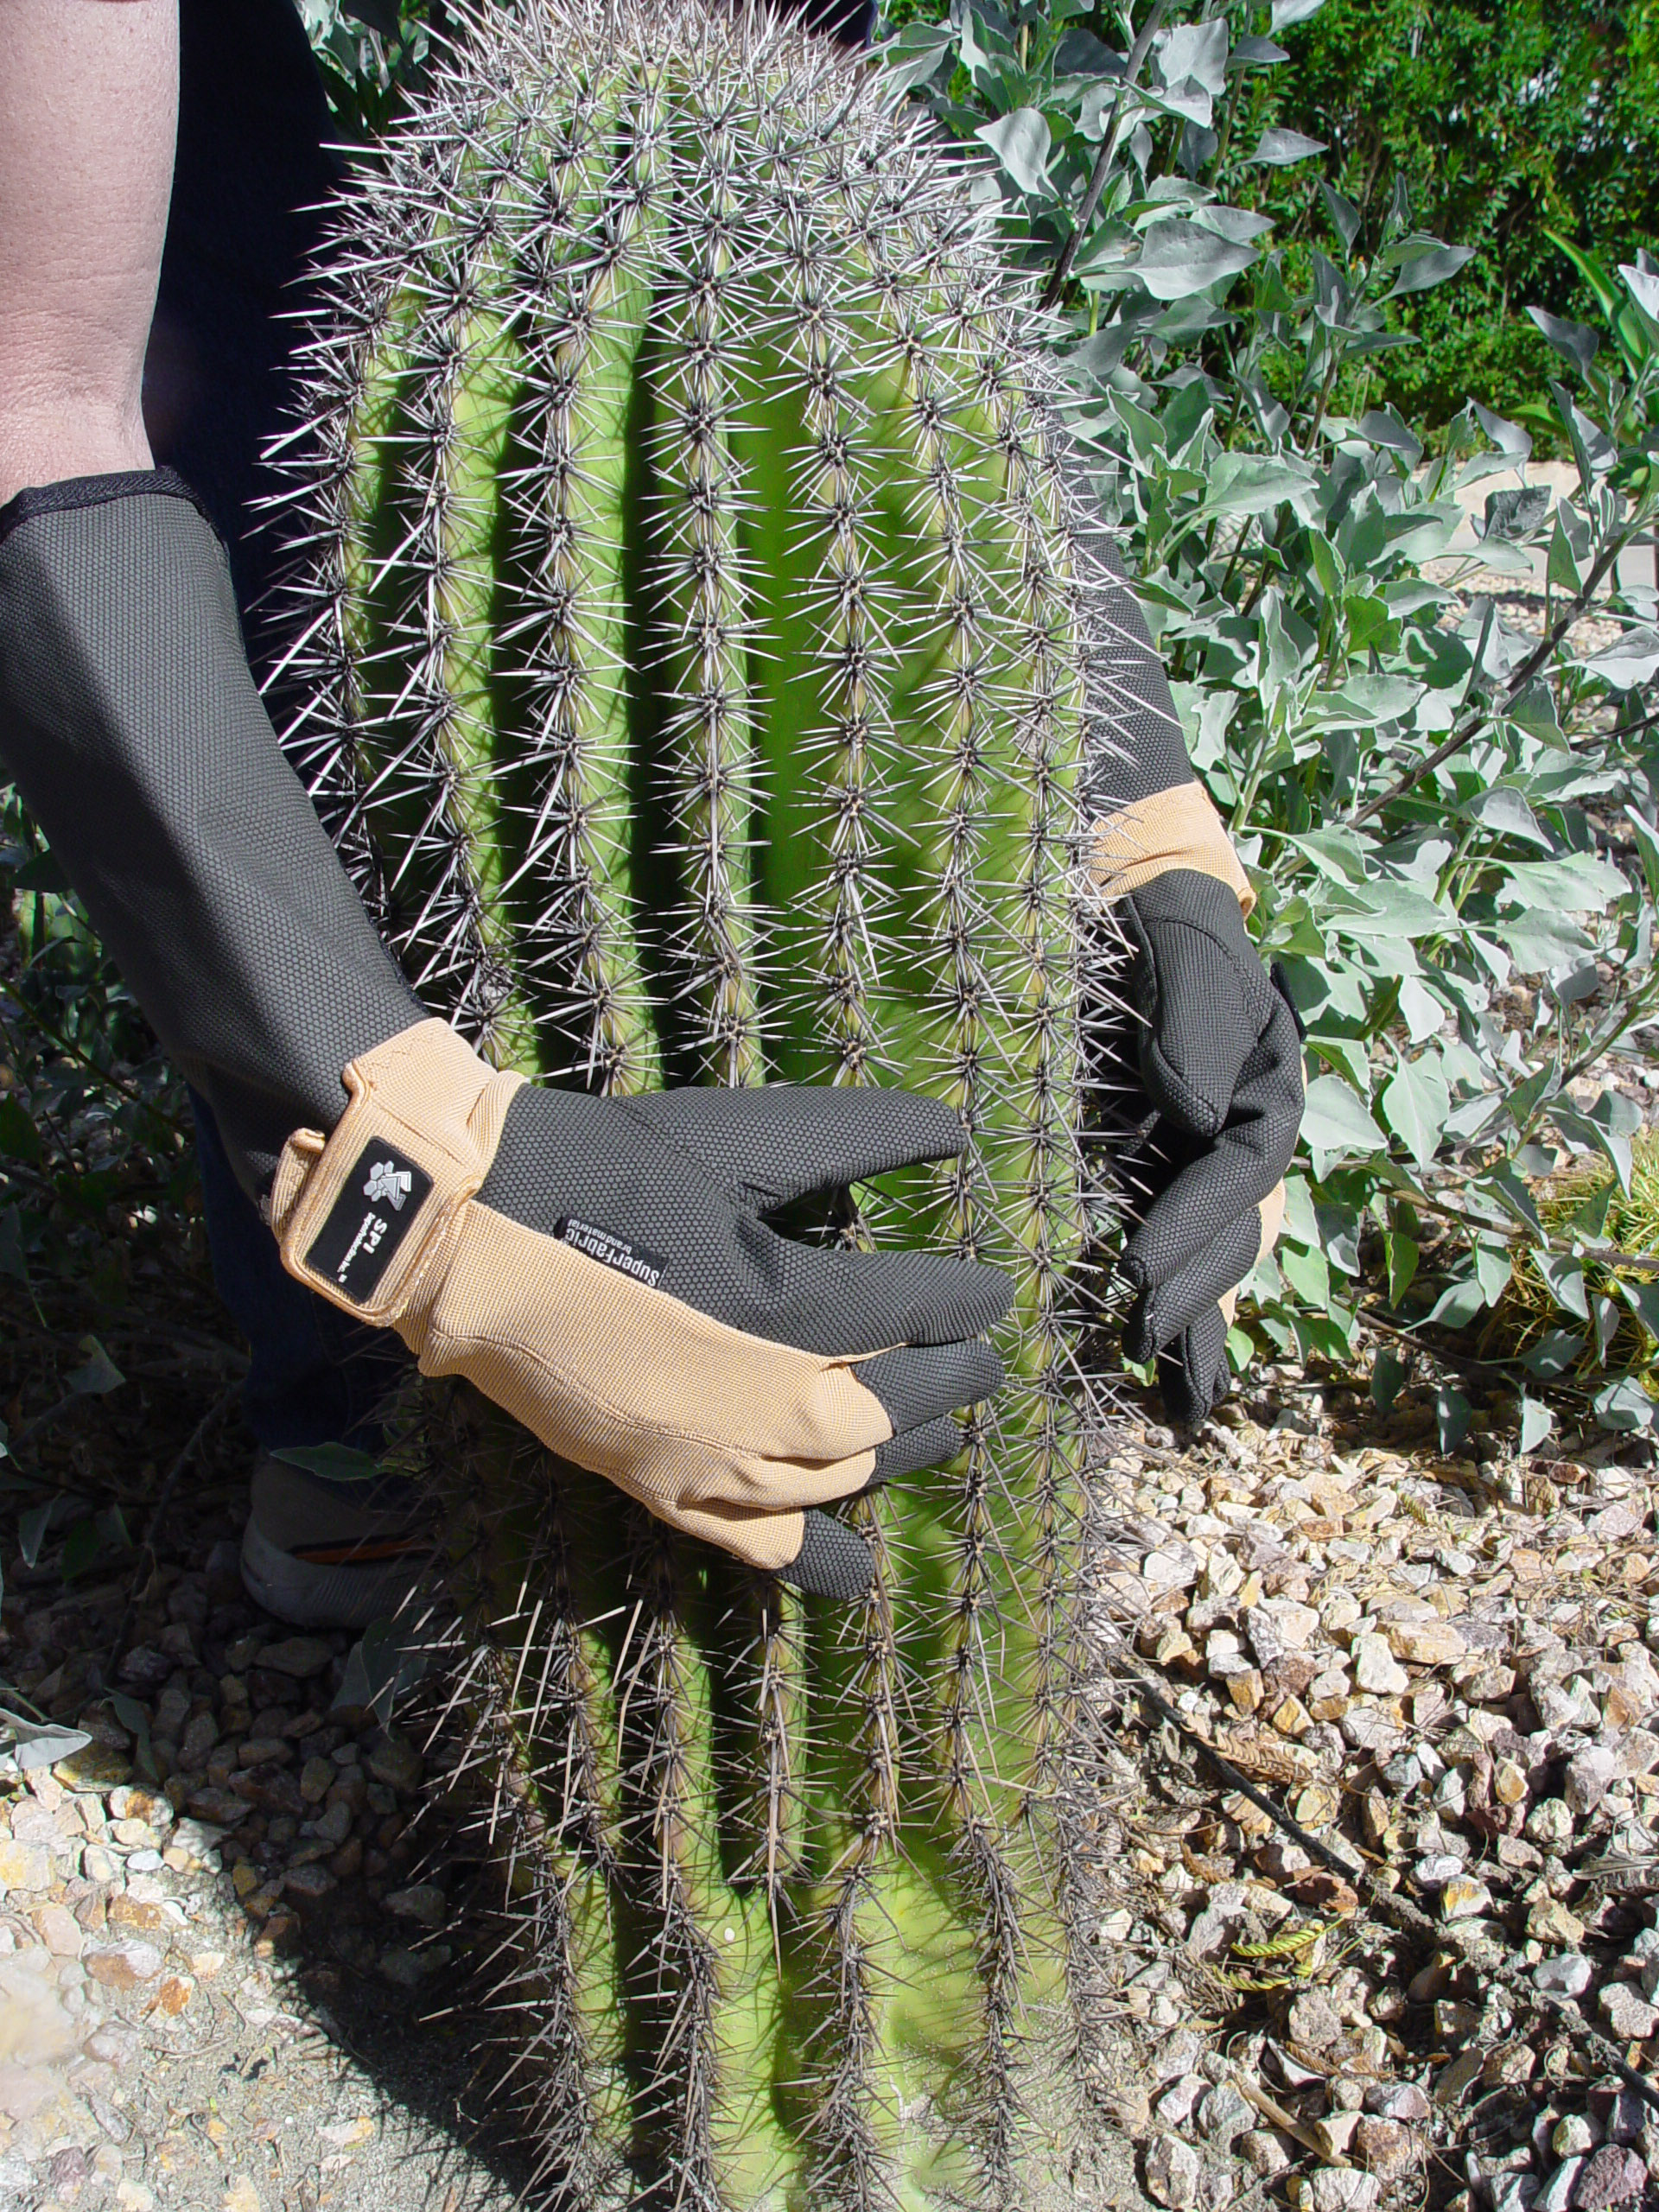 Thorn ArMOr Puncture Resistant Glove And Gauntlet Accessory.The Thorn ArMOr  Gauntlet Provides Comfortable Puncture Resistant Protection Of Forearm From  ...